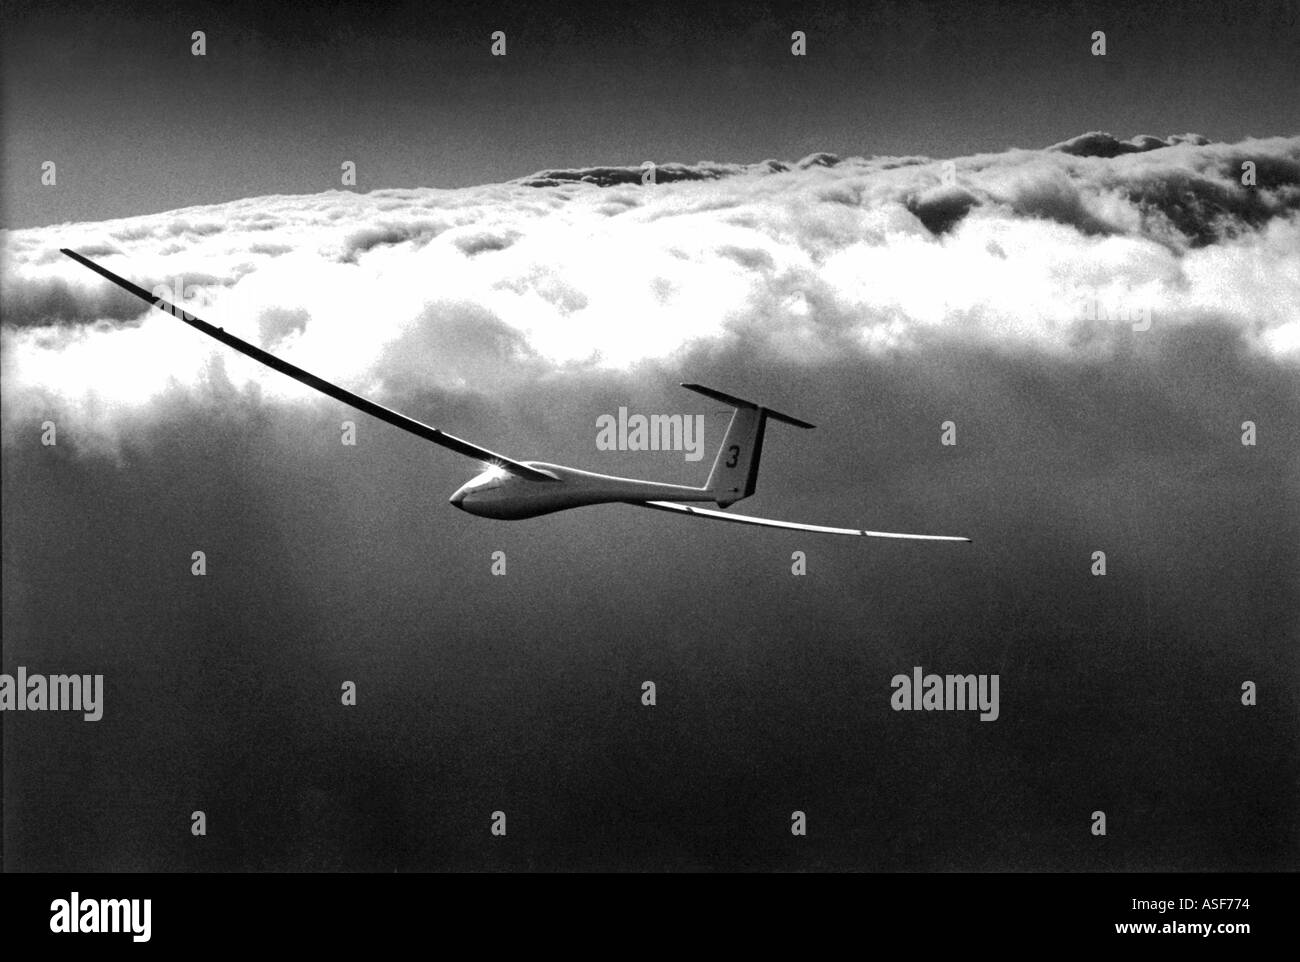 Glider soaring above the clouds - Stock Image